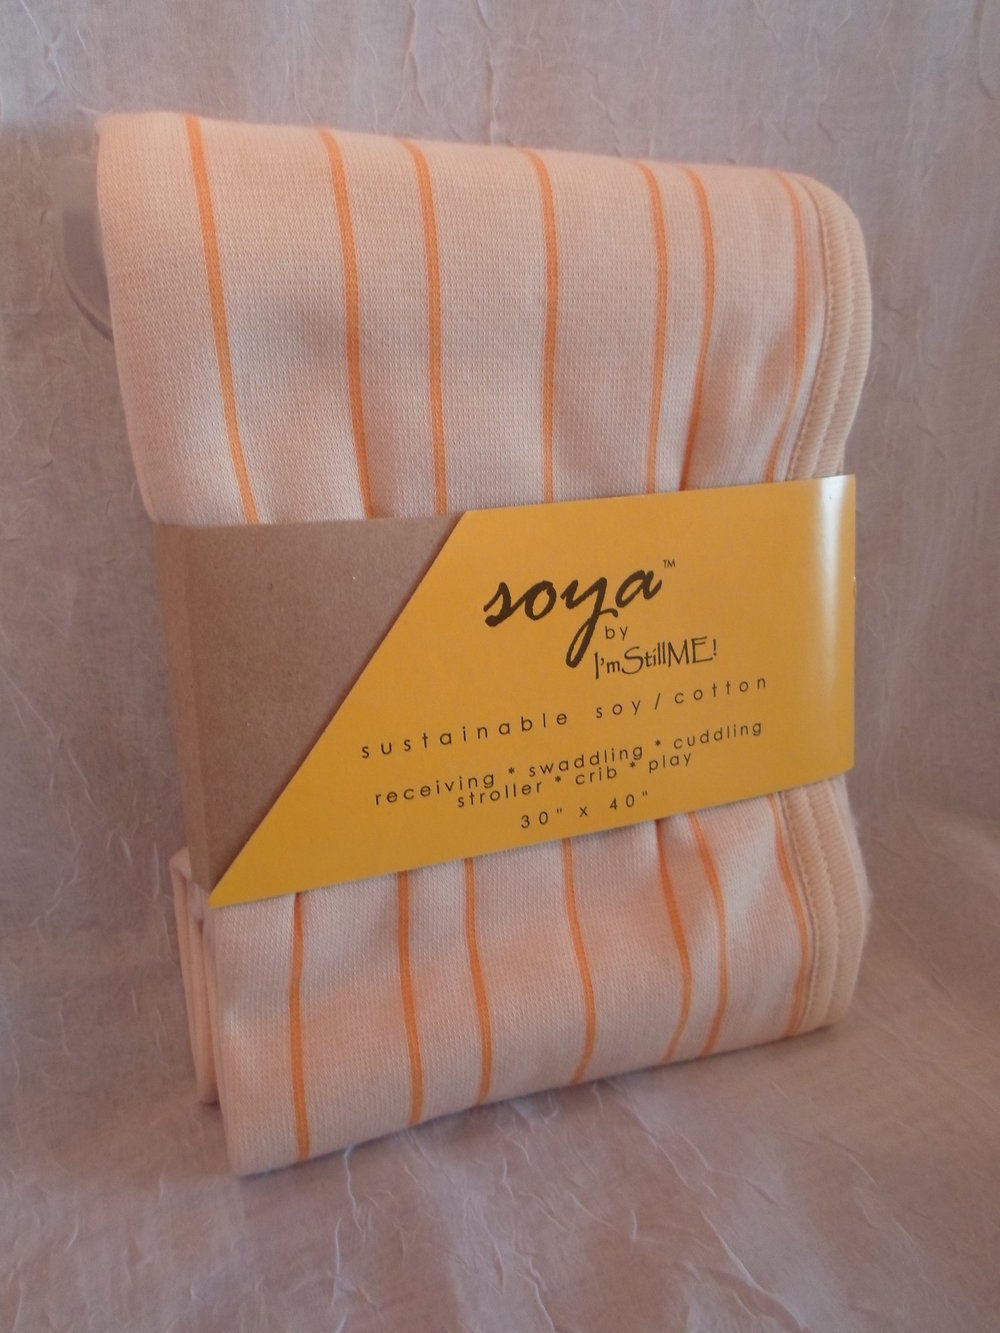 Soya 30x40 Cotton and Soy Blanket in Orange    $29.95    Wants 1